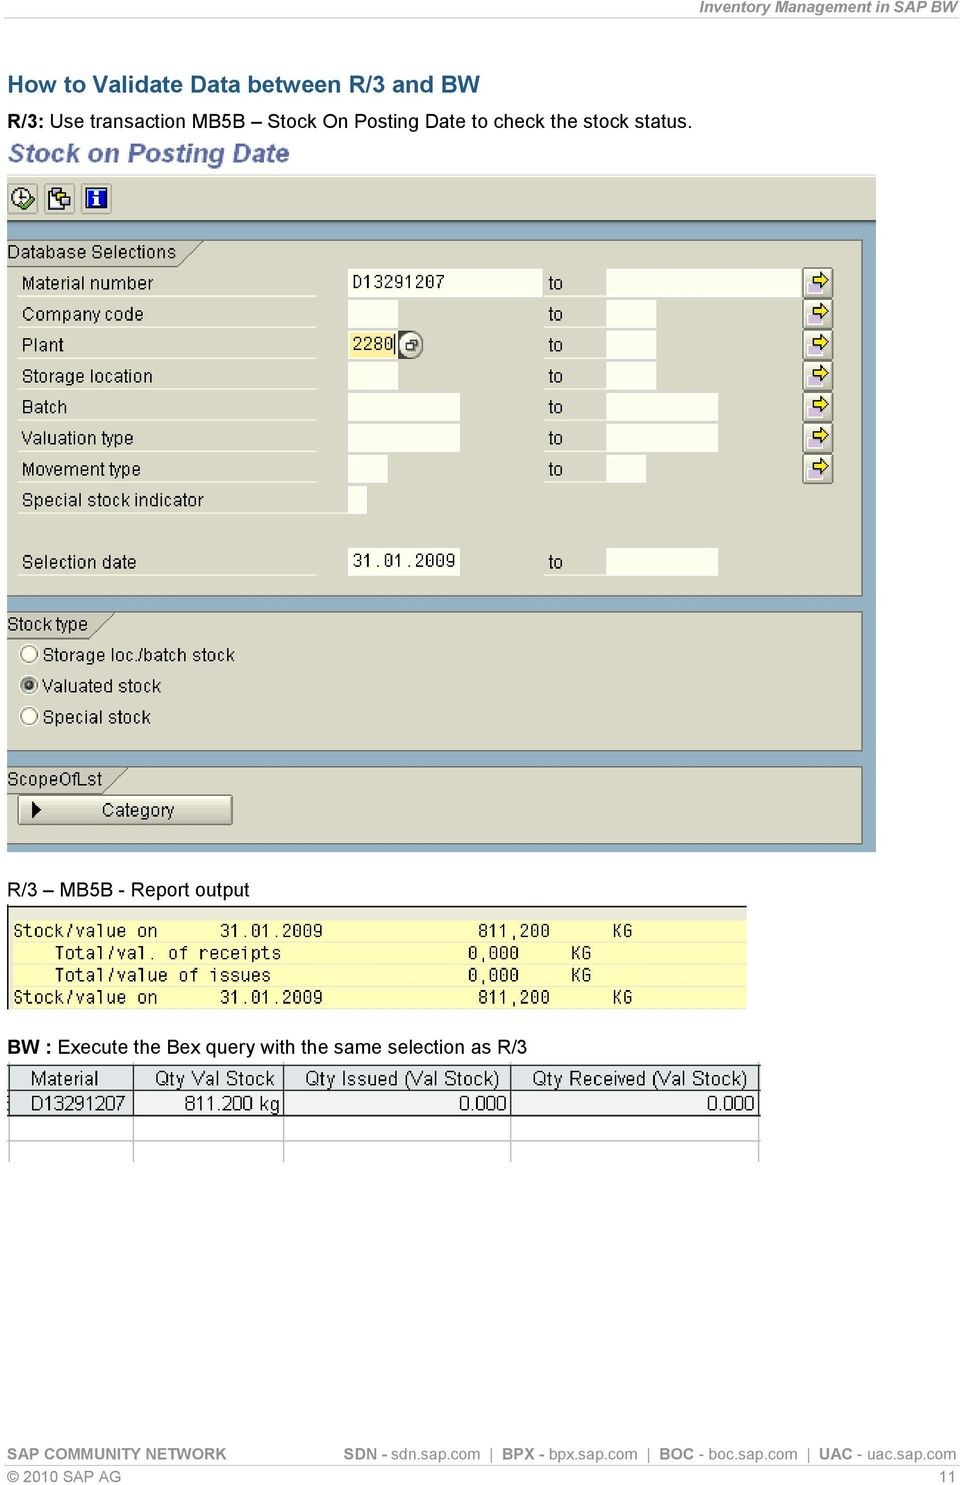 Inventory Management in SAP BW - PDF